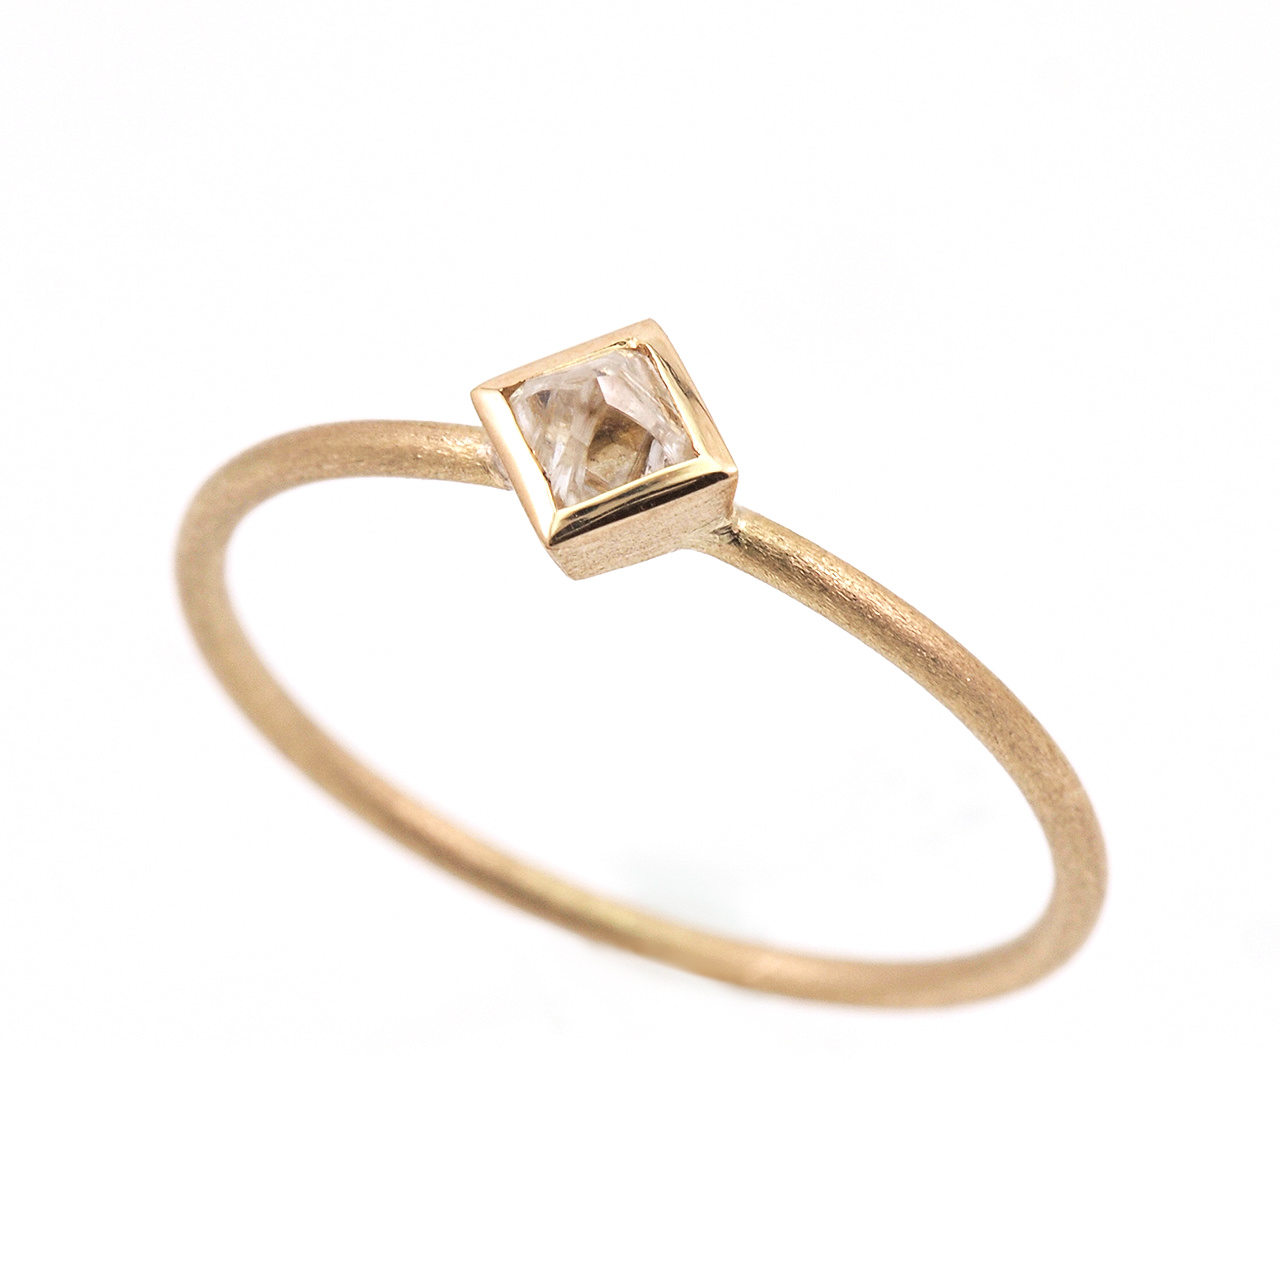 Diamond octahedron ring